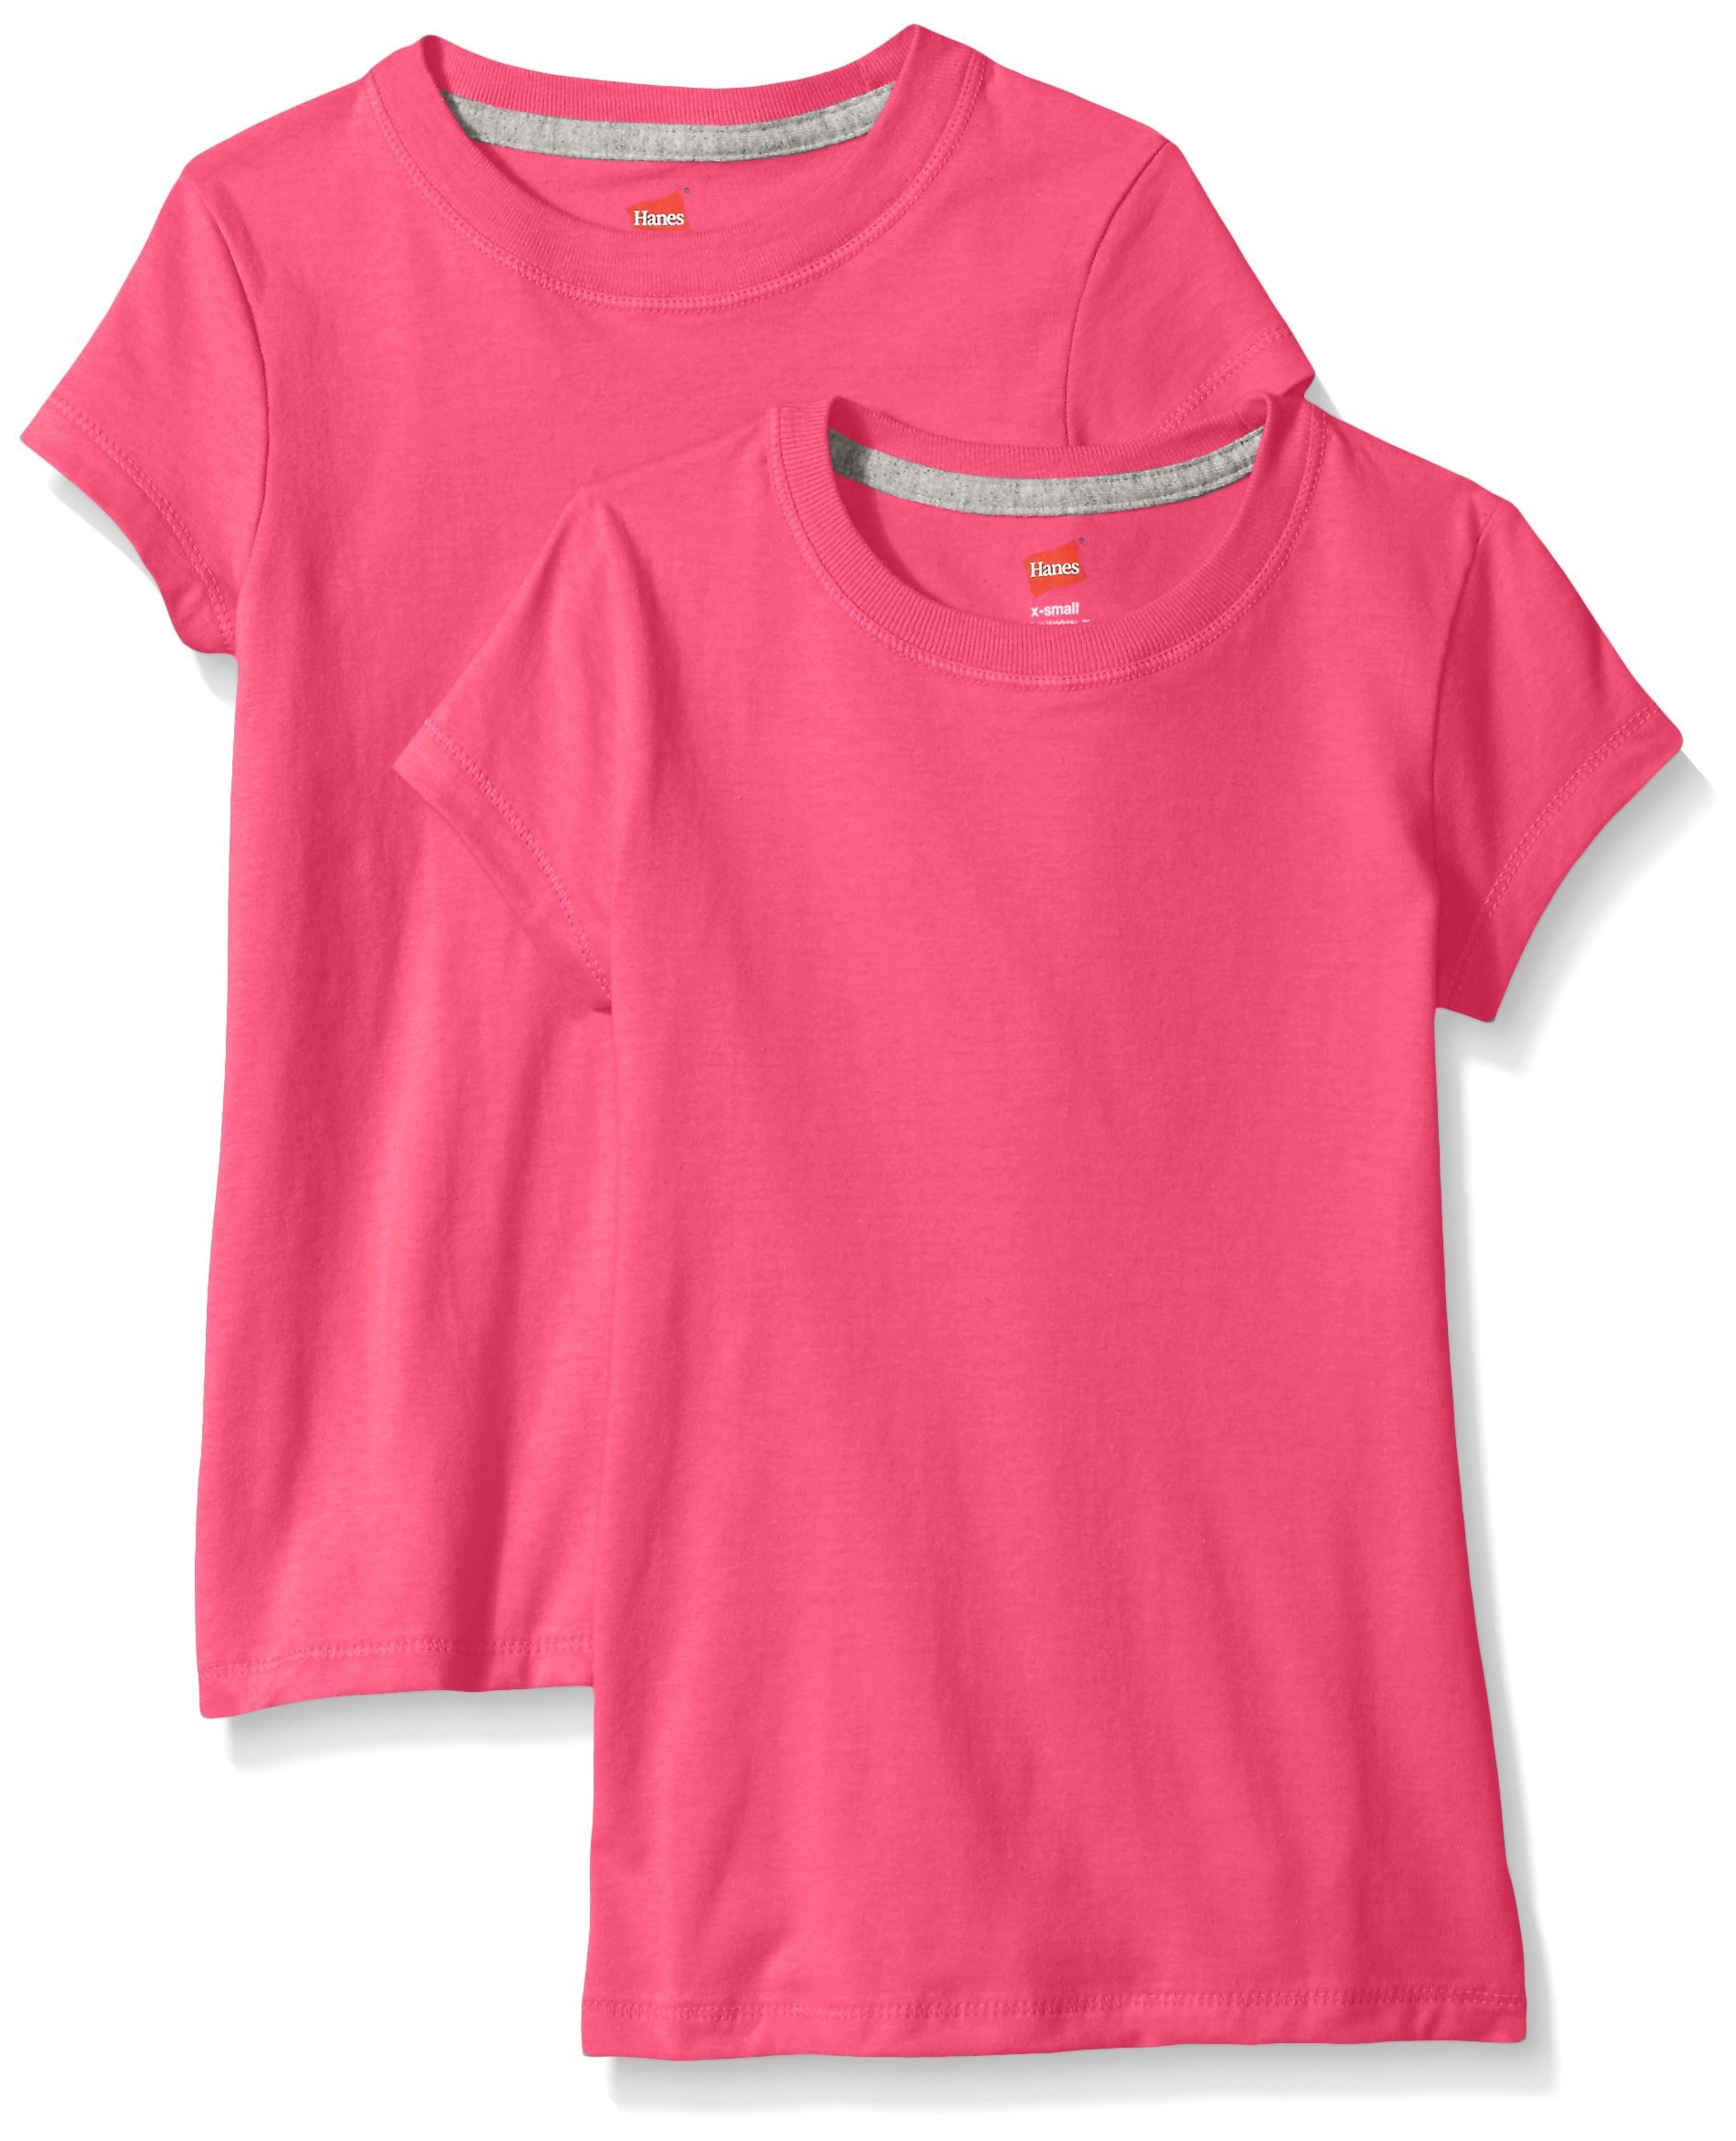 Hanes Little Girls' Jersey Cotton Tee (Pack of 2), Amaranth, Large